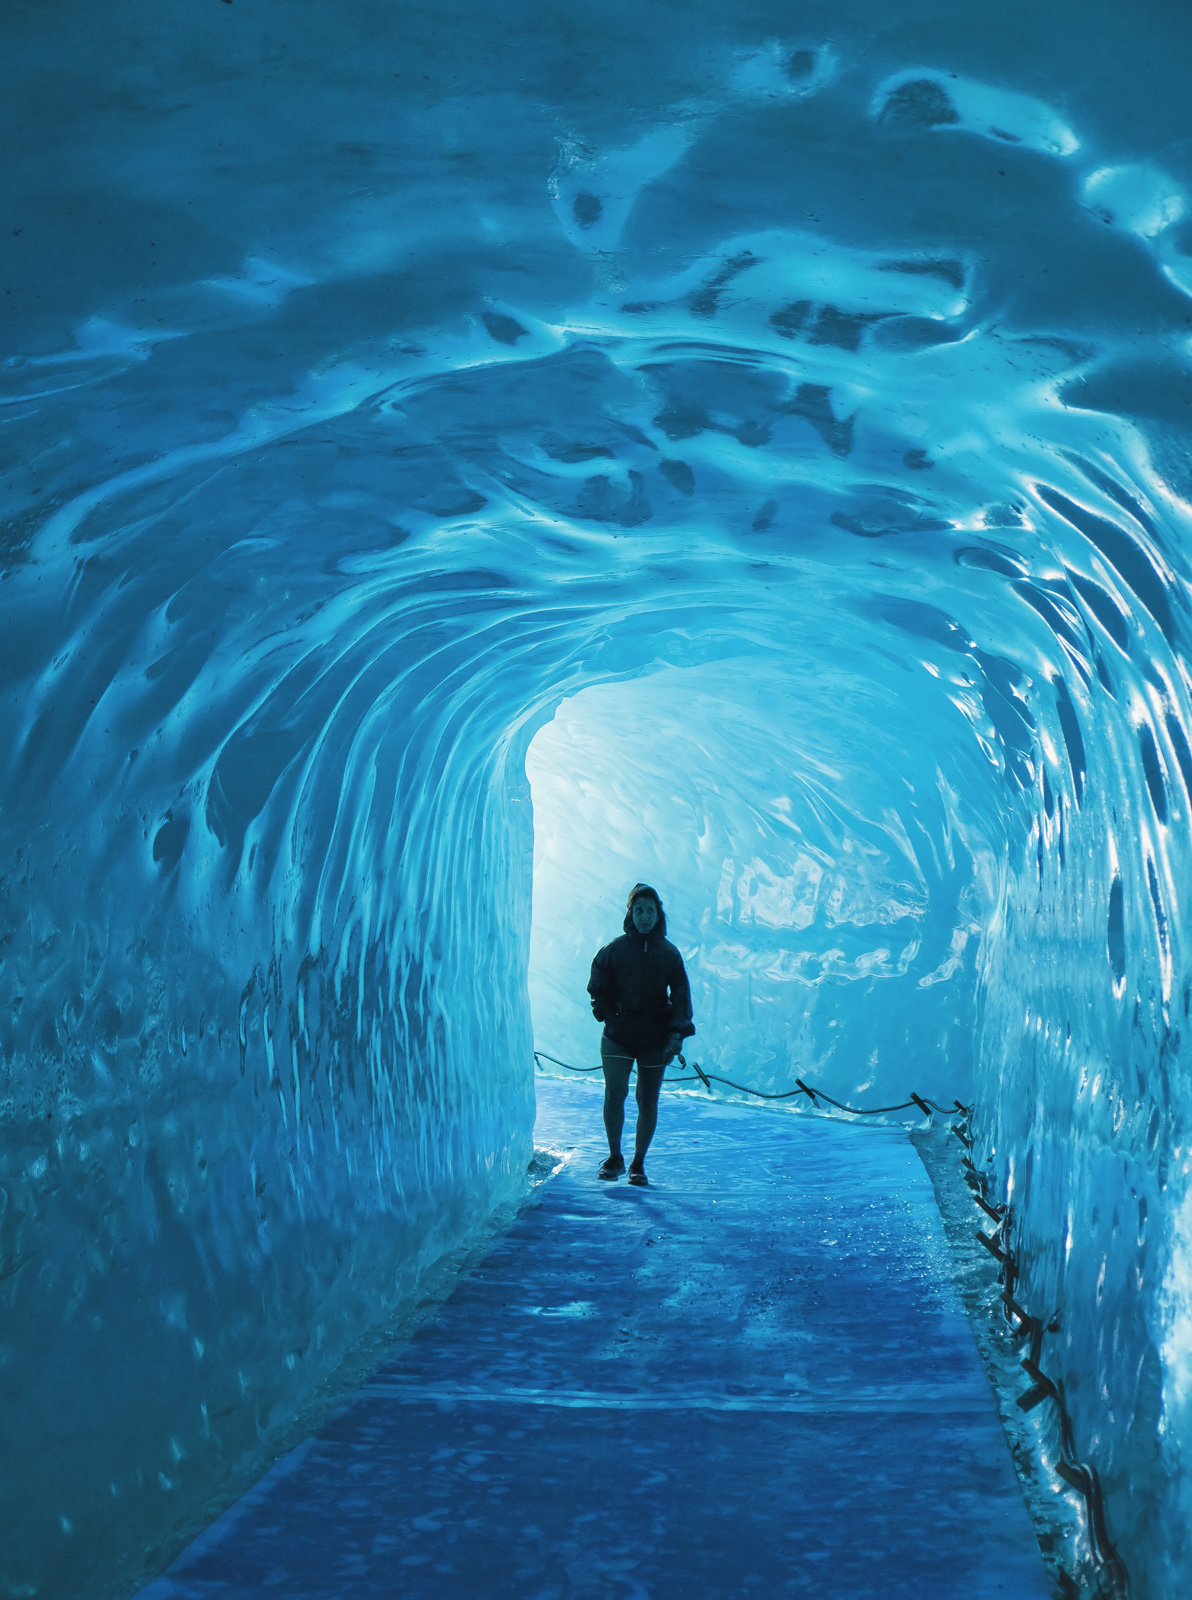 Ice Tunnel, Mer De Glace, Chamonix, France,ice caverns, glacier, compressed, blue, ice, honed, slippery, Mont Blanc Mass, photo